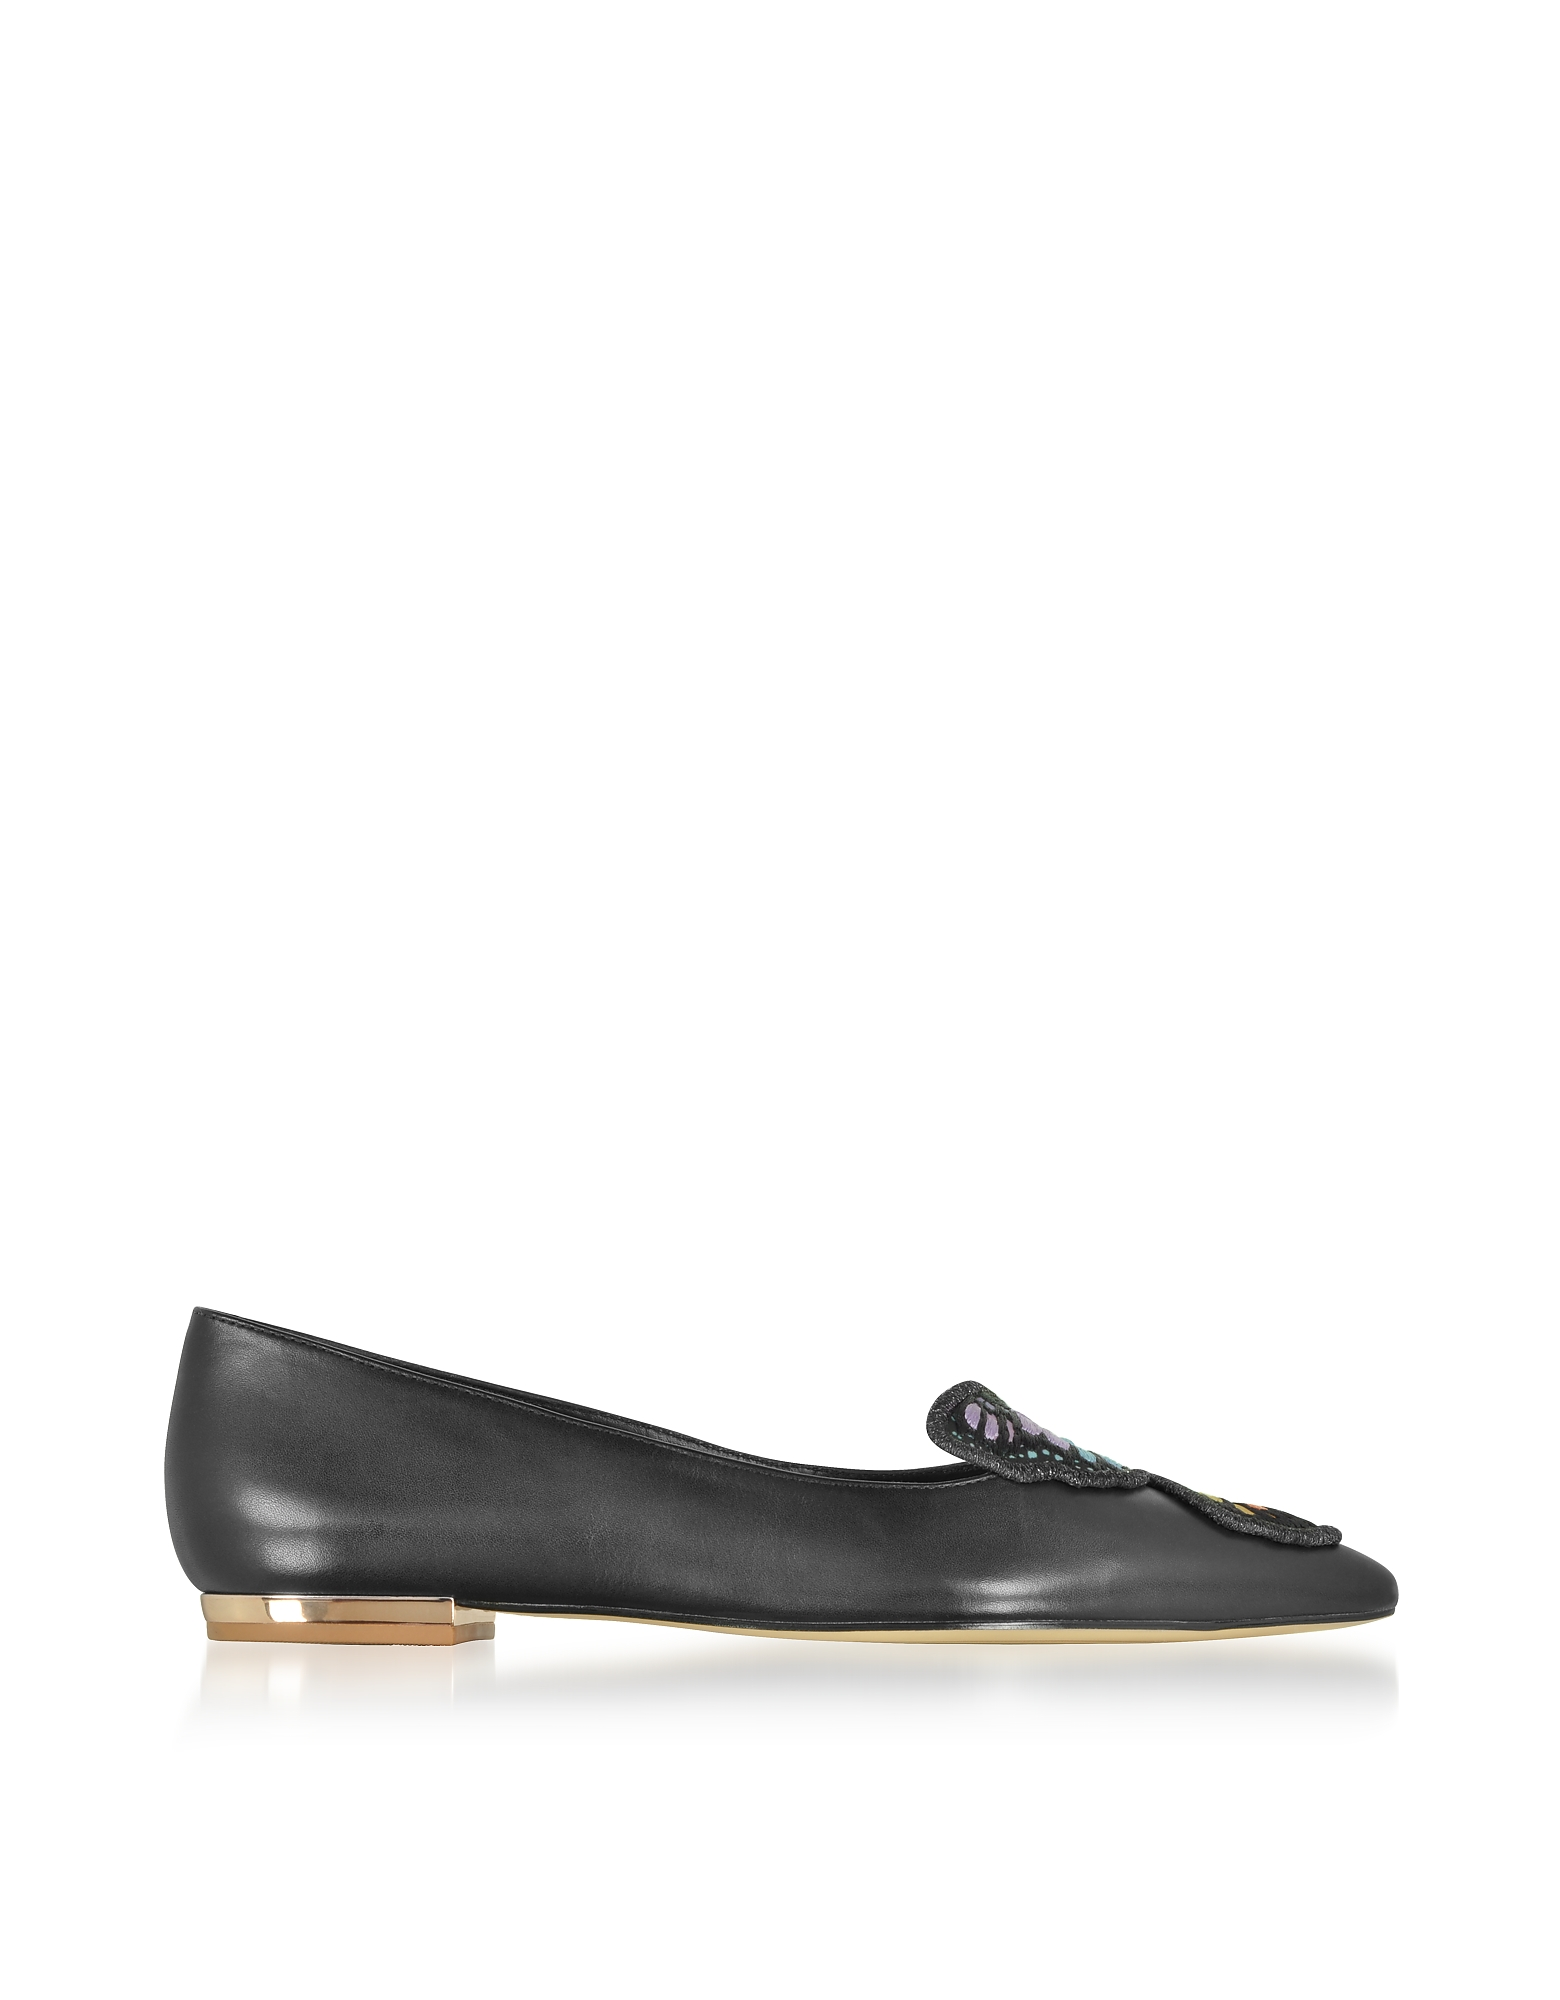 Sophia Webster Shoes, Black Leather Bibi Butterfly Flat Ballerinas